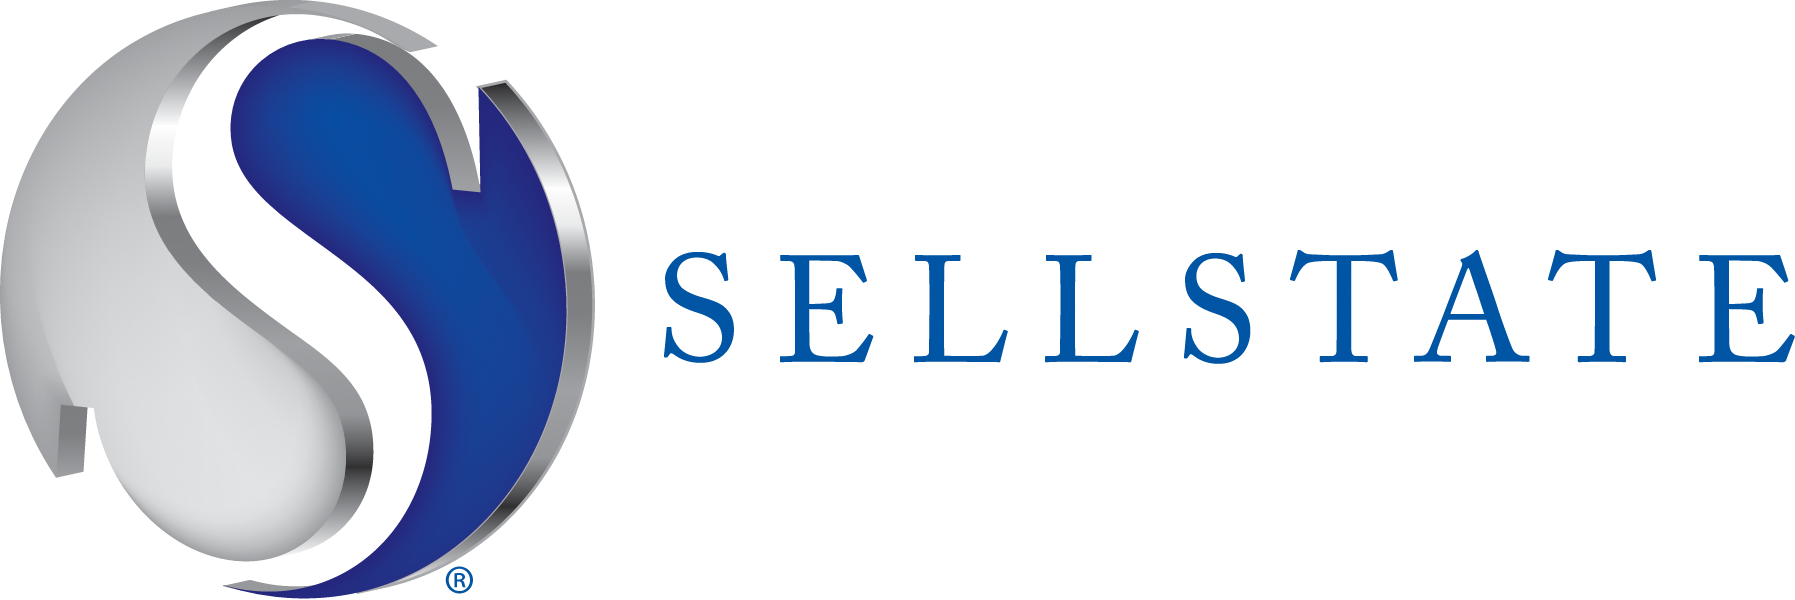 Sellstate High Performance Realty